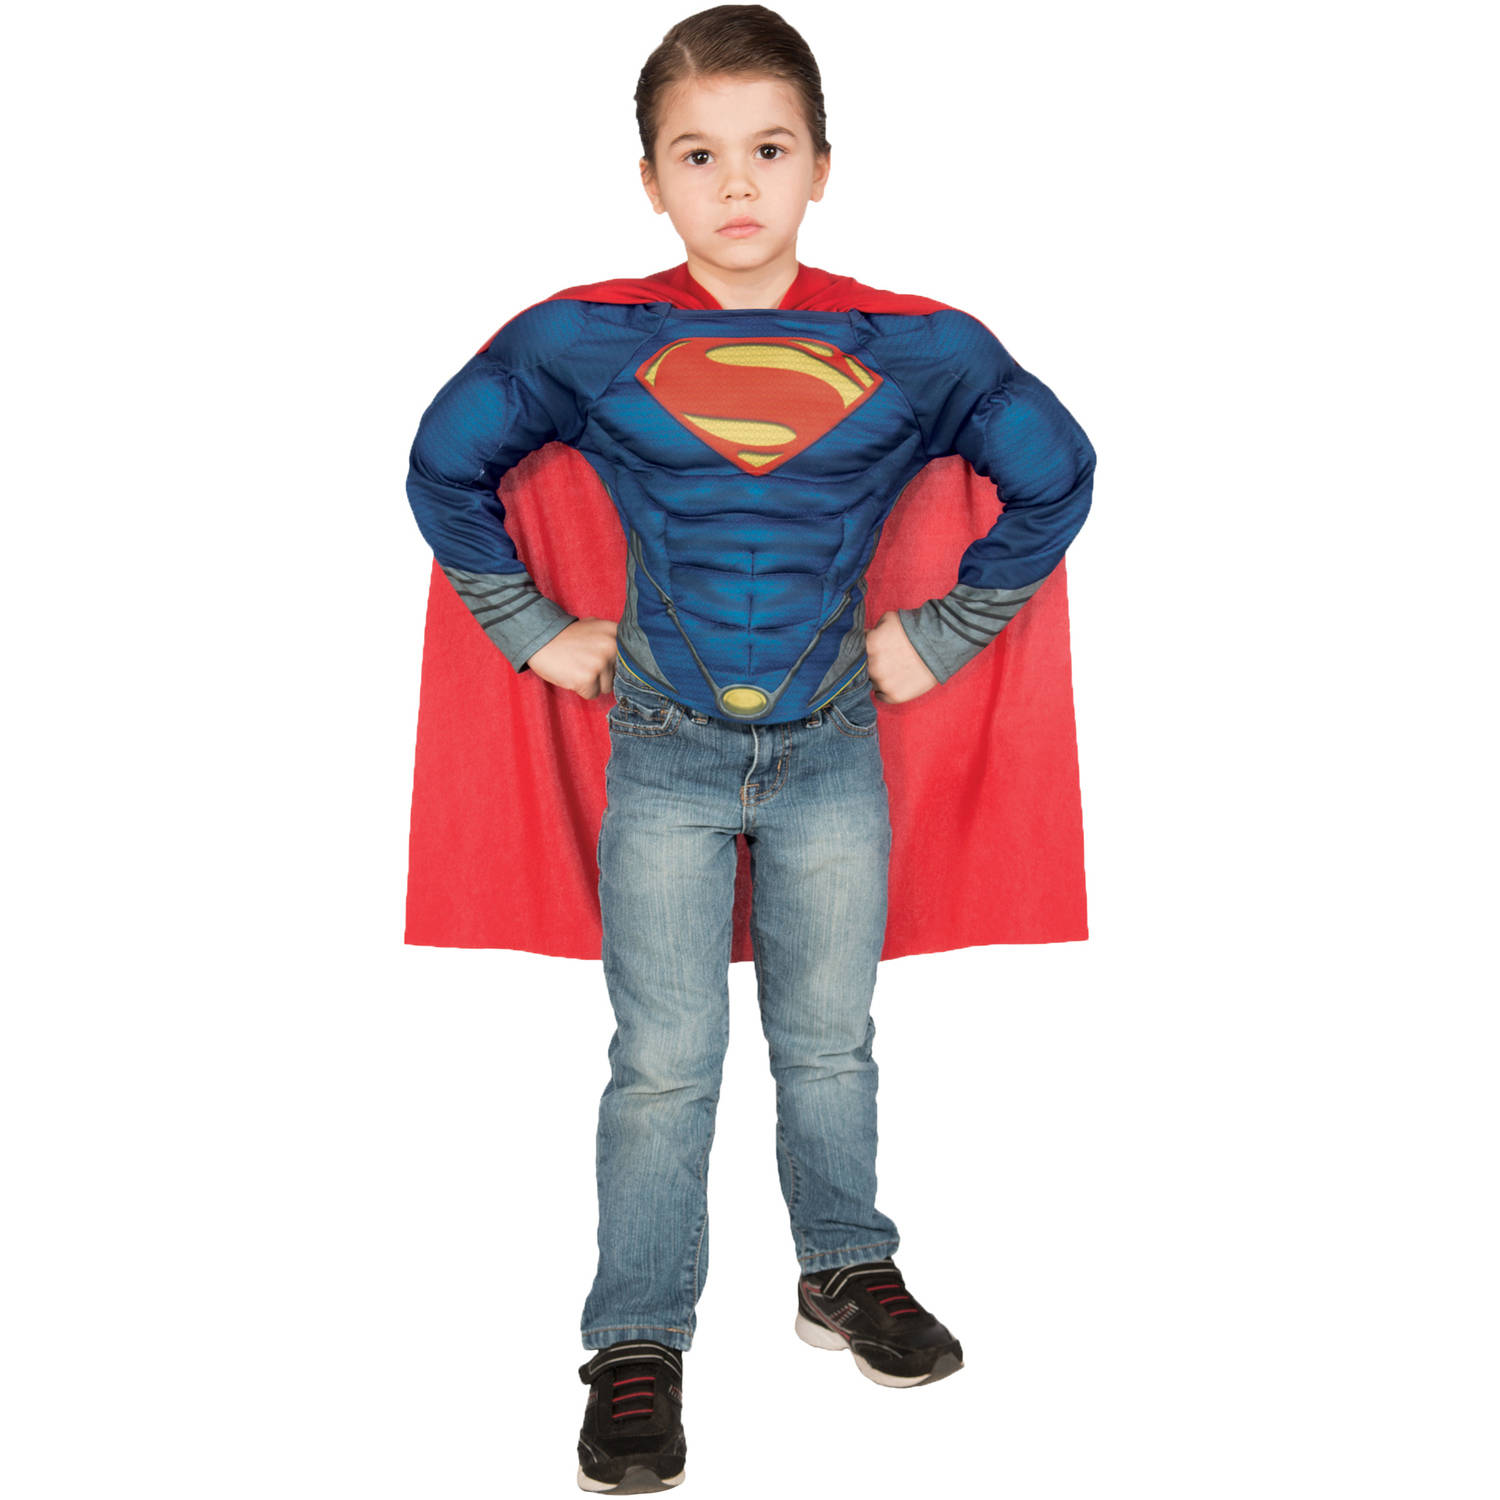 Superman Muscle Shirt Set Child Halloween Costume